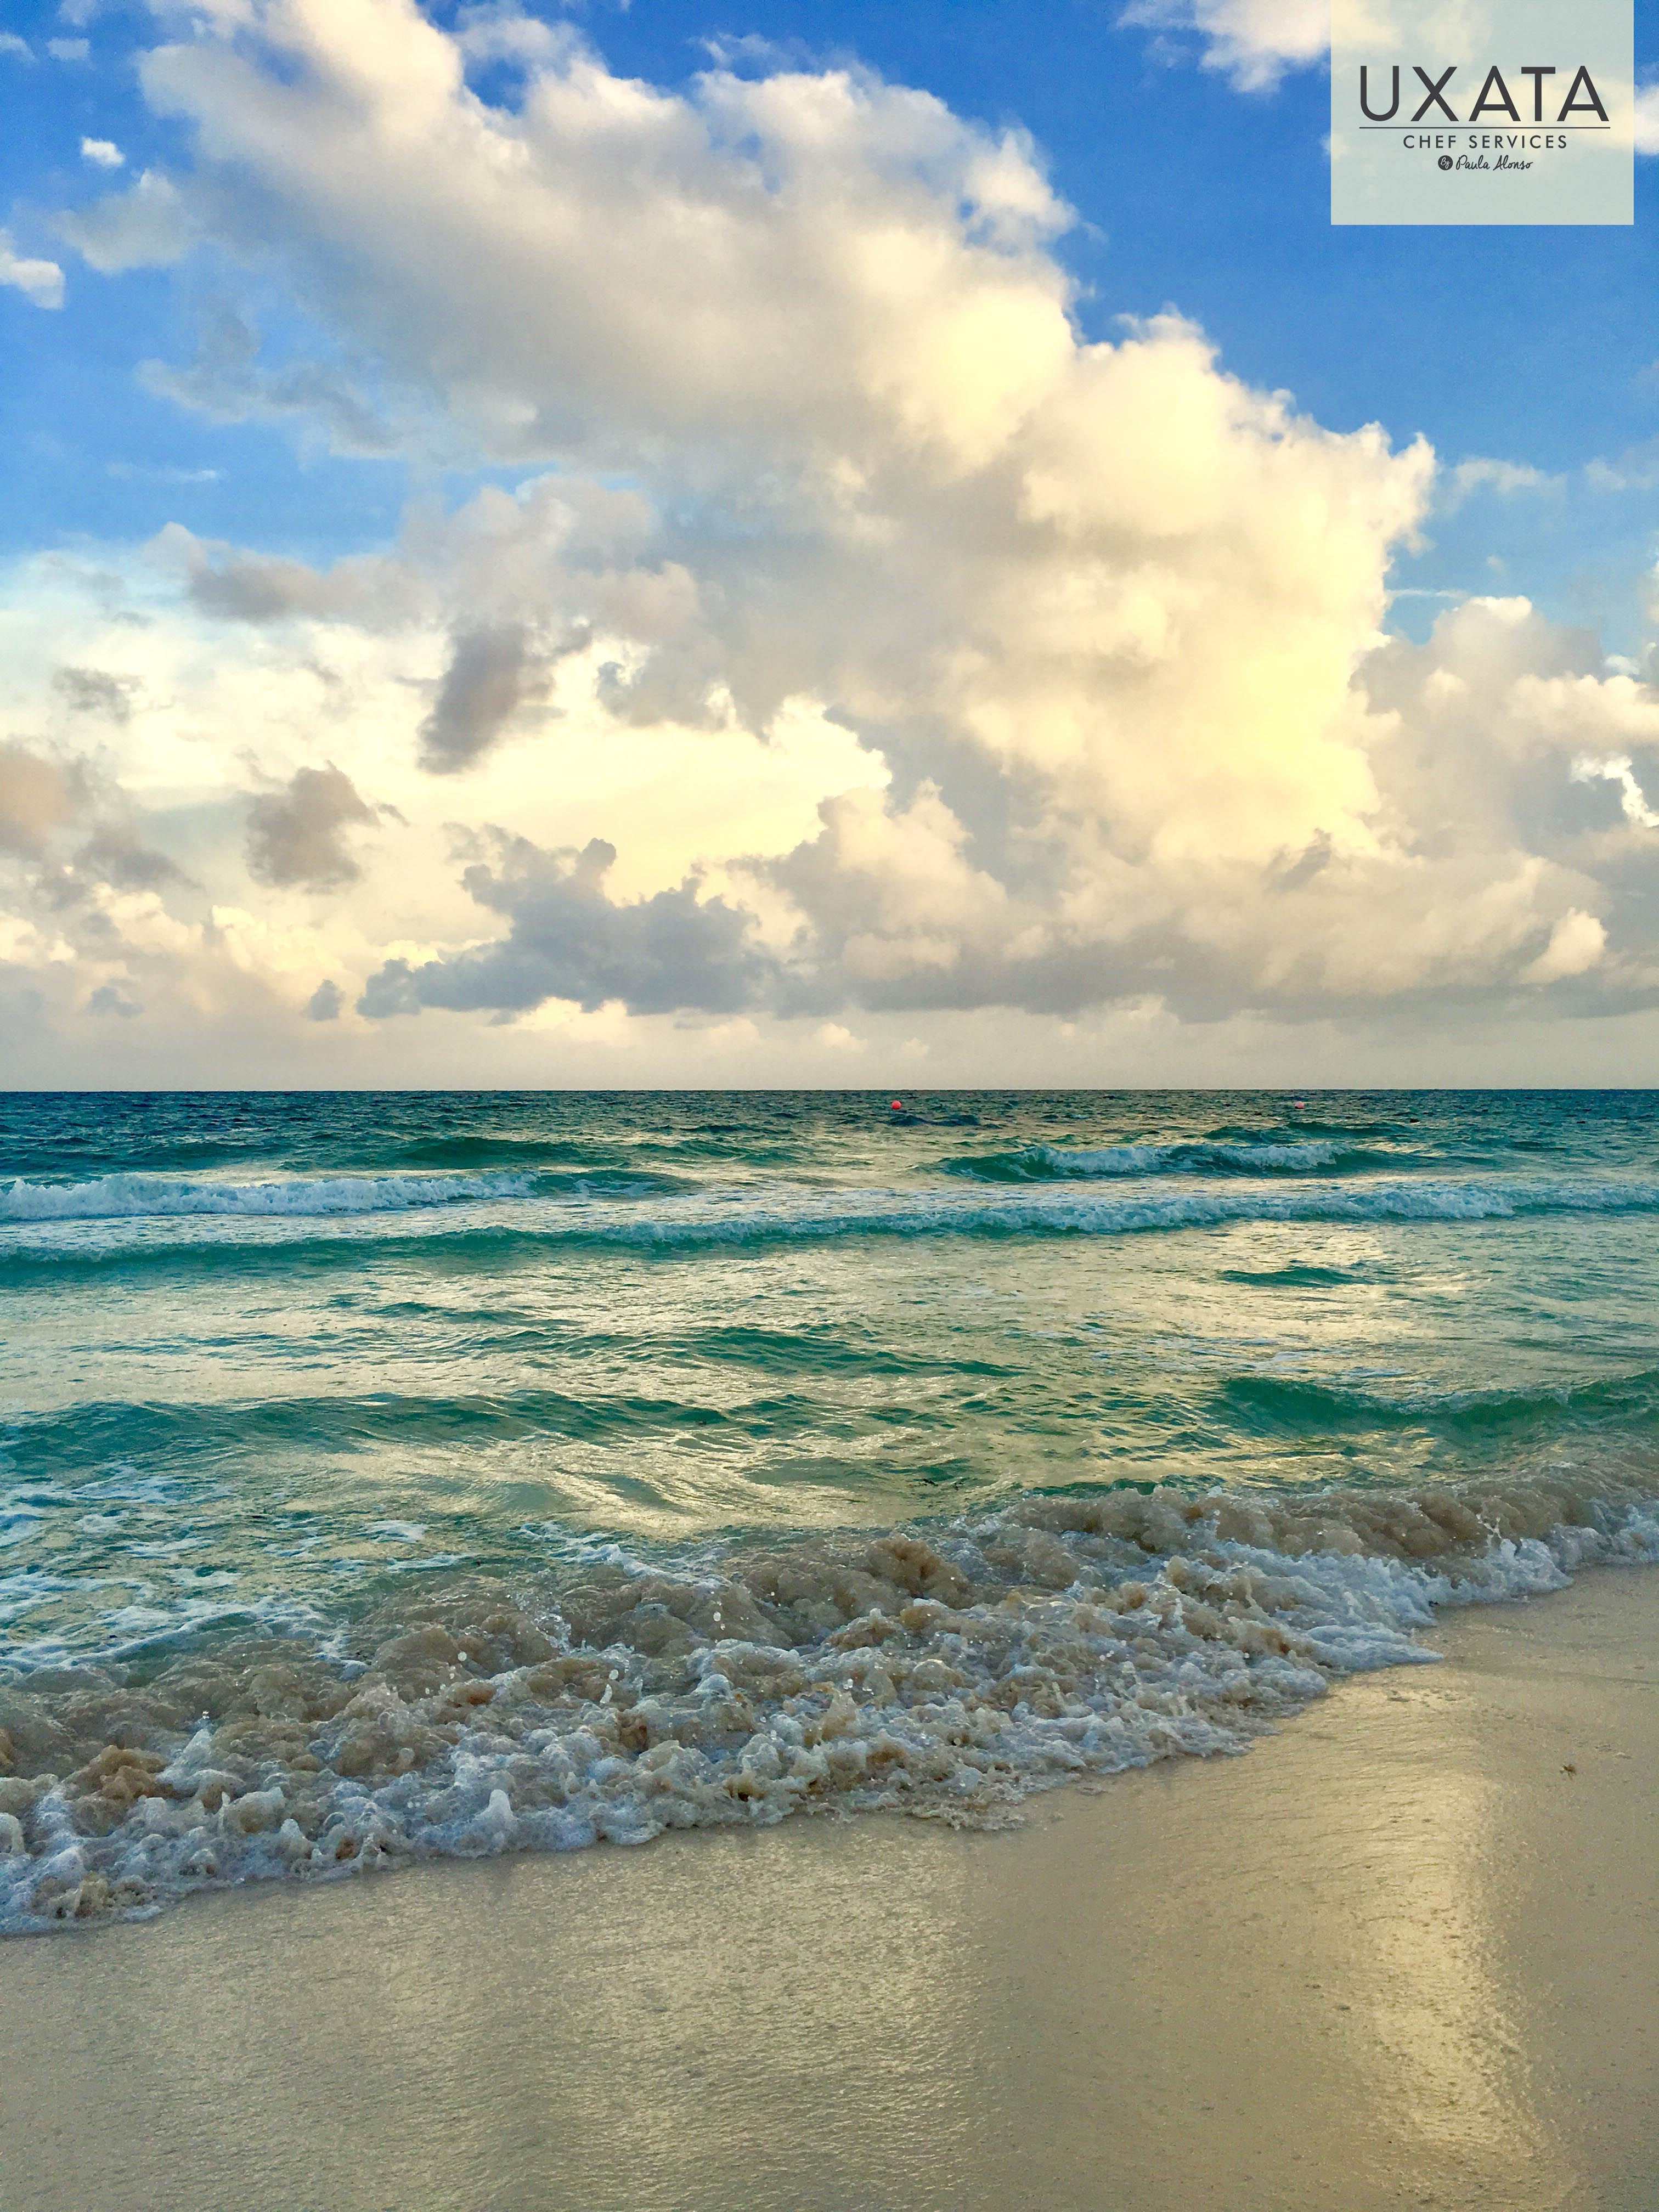 White sand and turquoise caribbean water in the coast of Puerto Morelos Riviera Maya by UXATA Chef Services